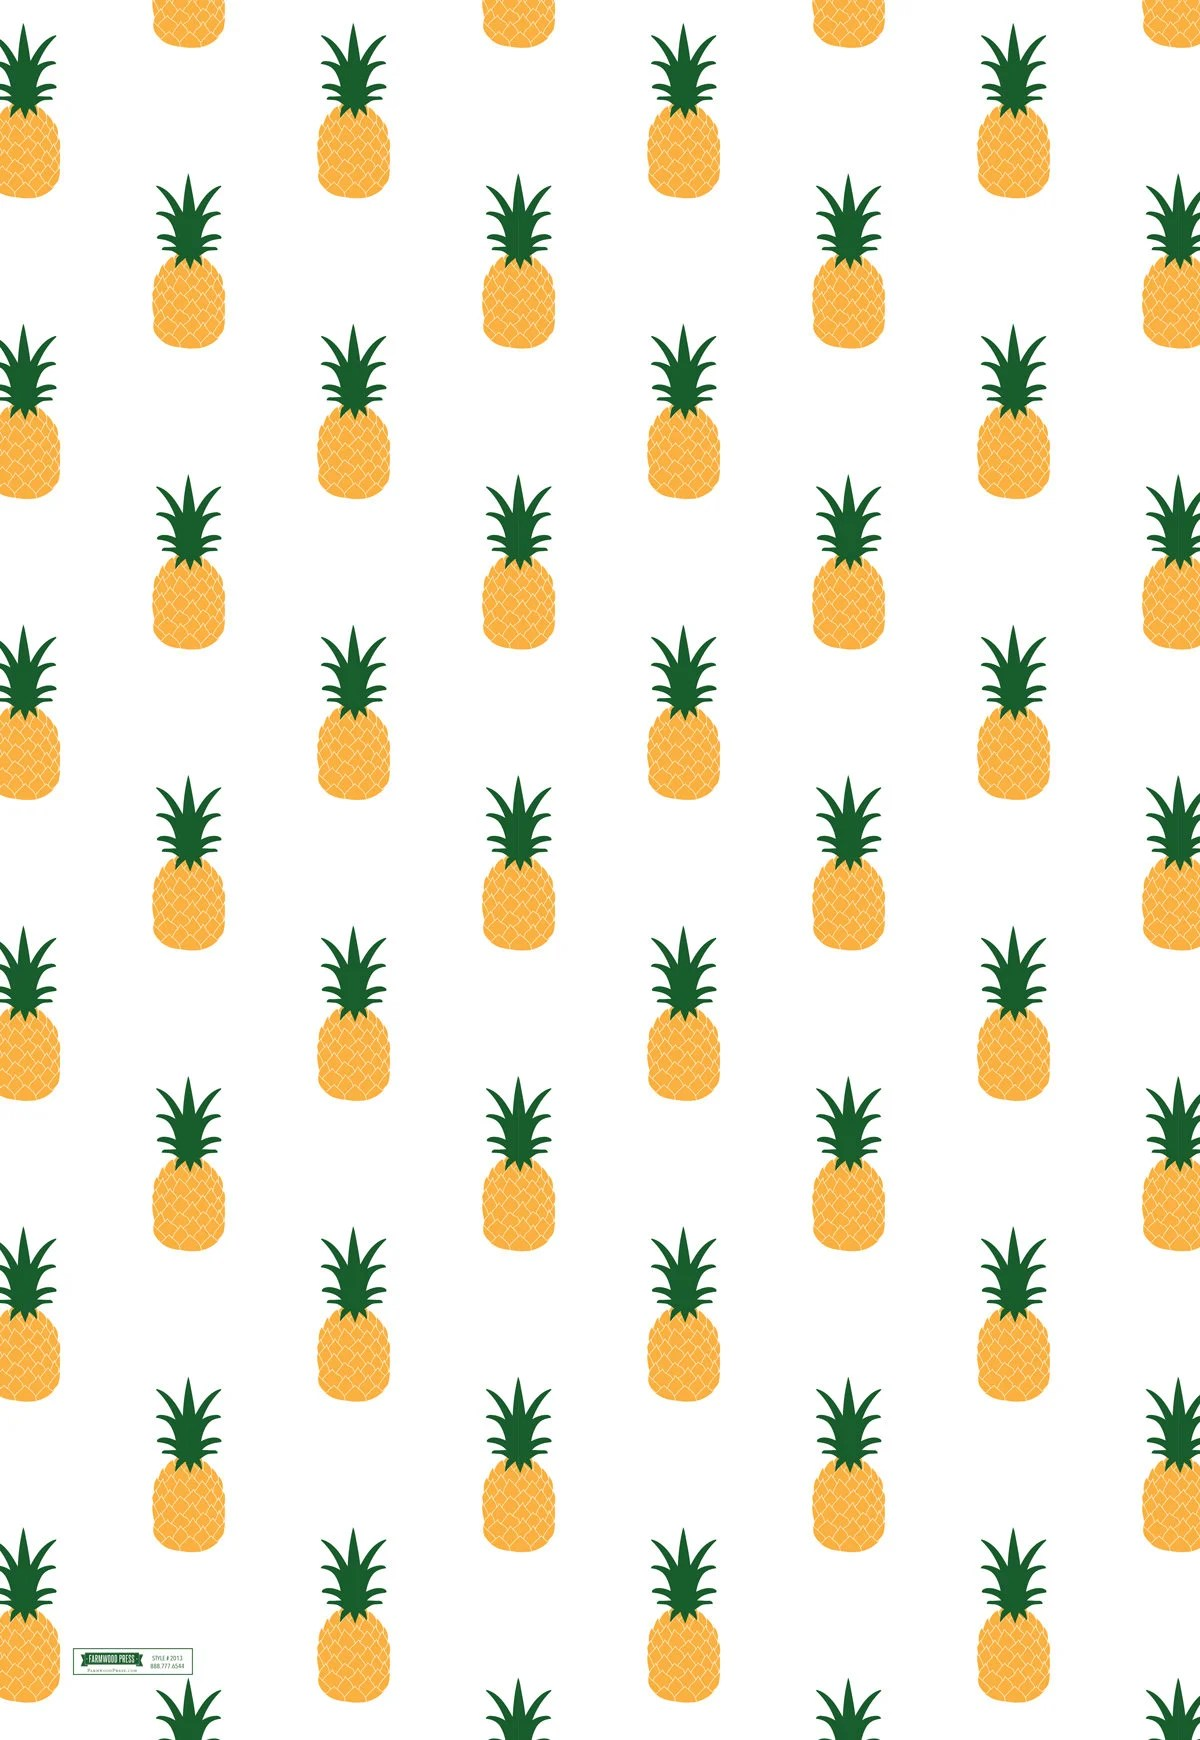 Cute Love Wallpaper For Whatsapp Pineapple Wrapping Paper Pineapple Gift Wrap Etsy